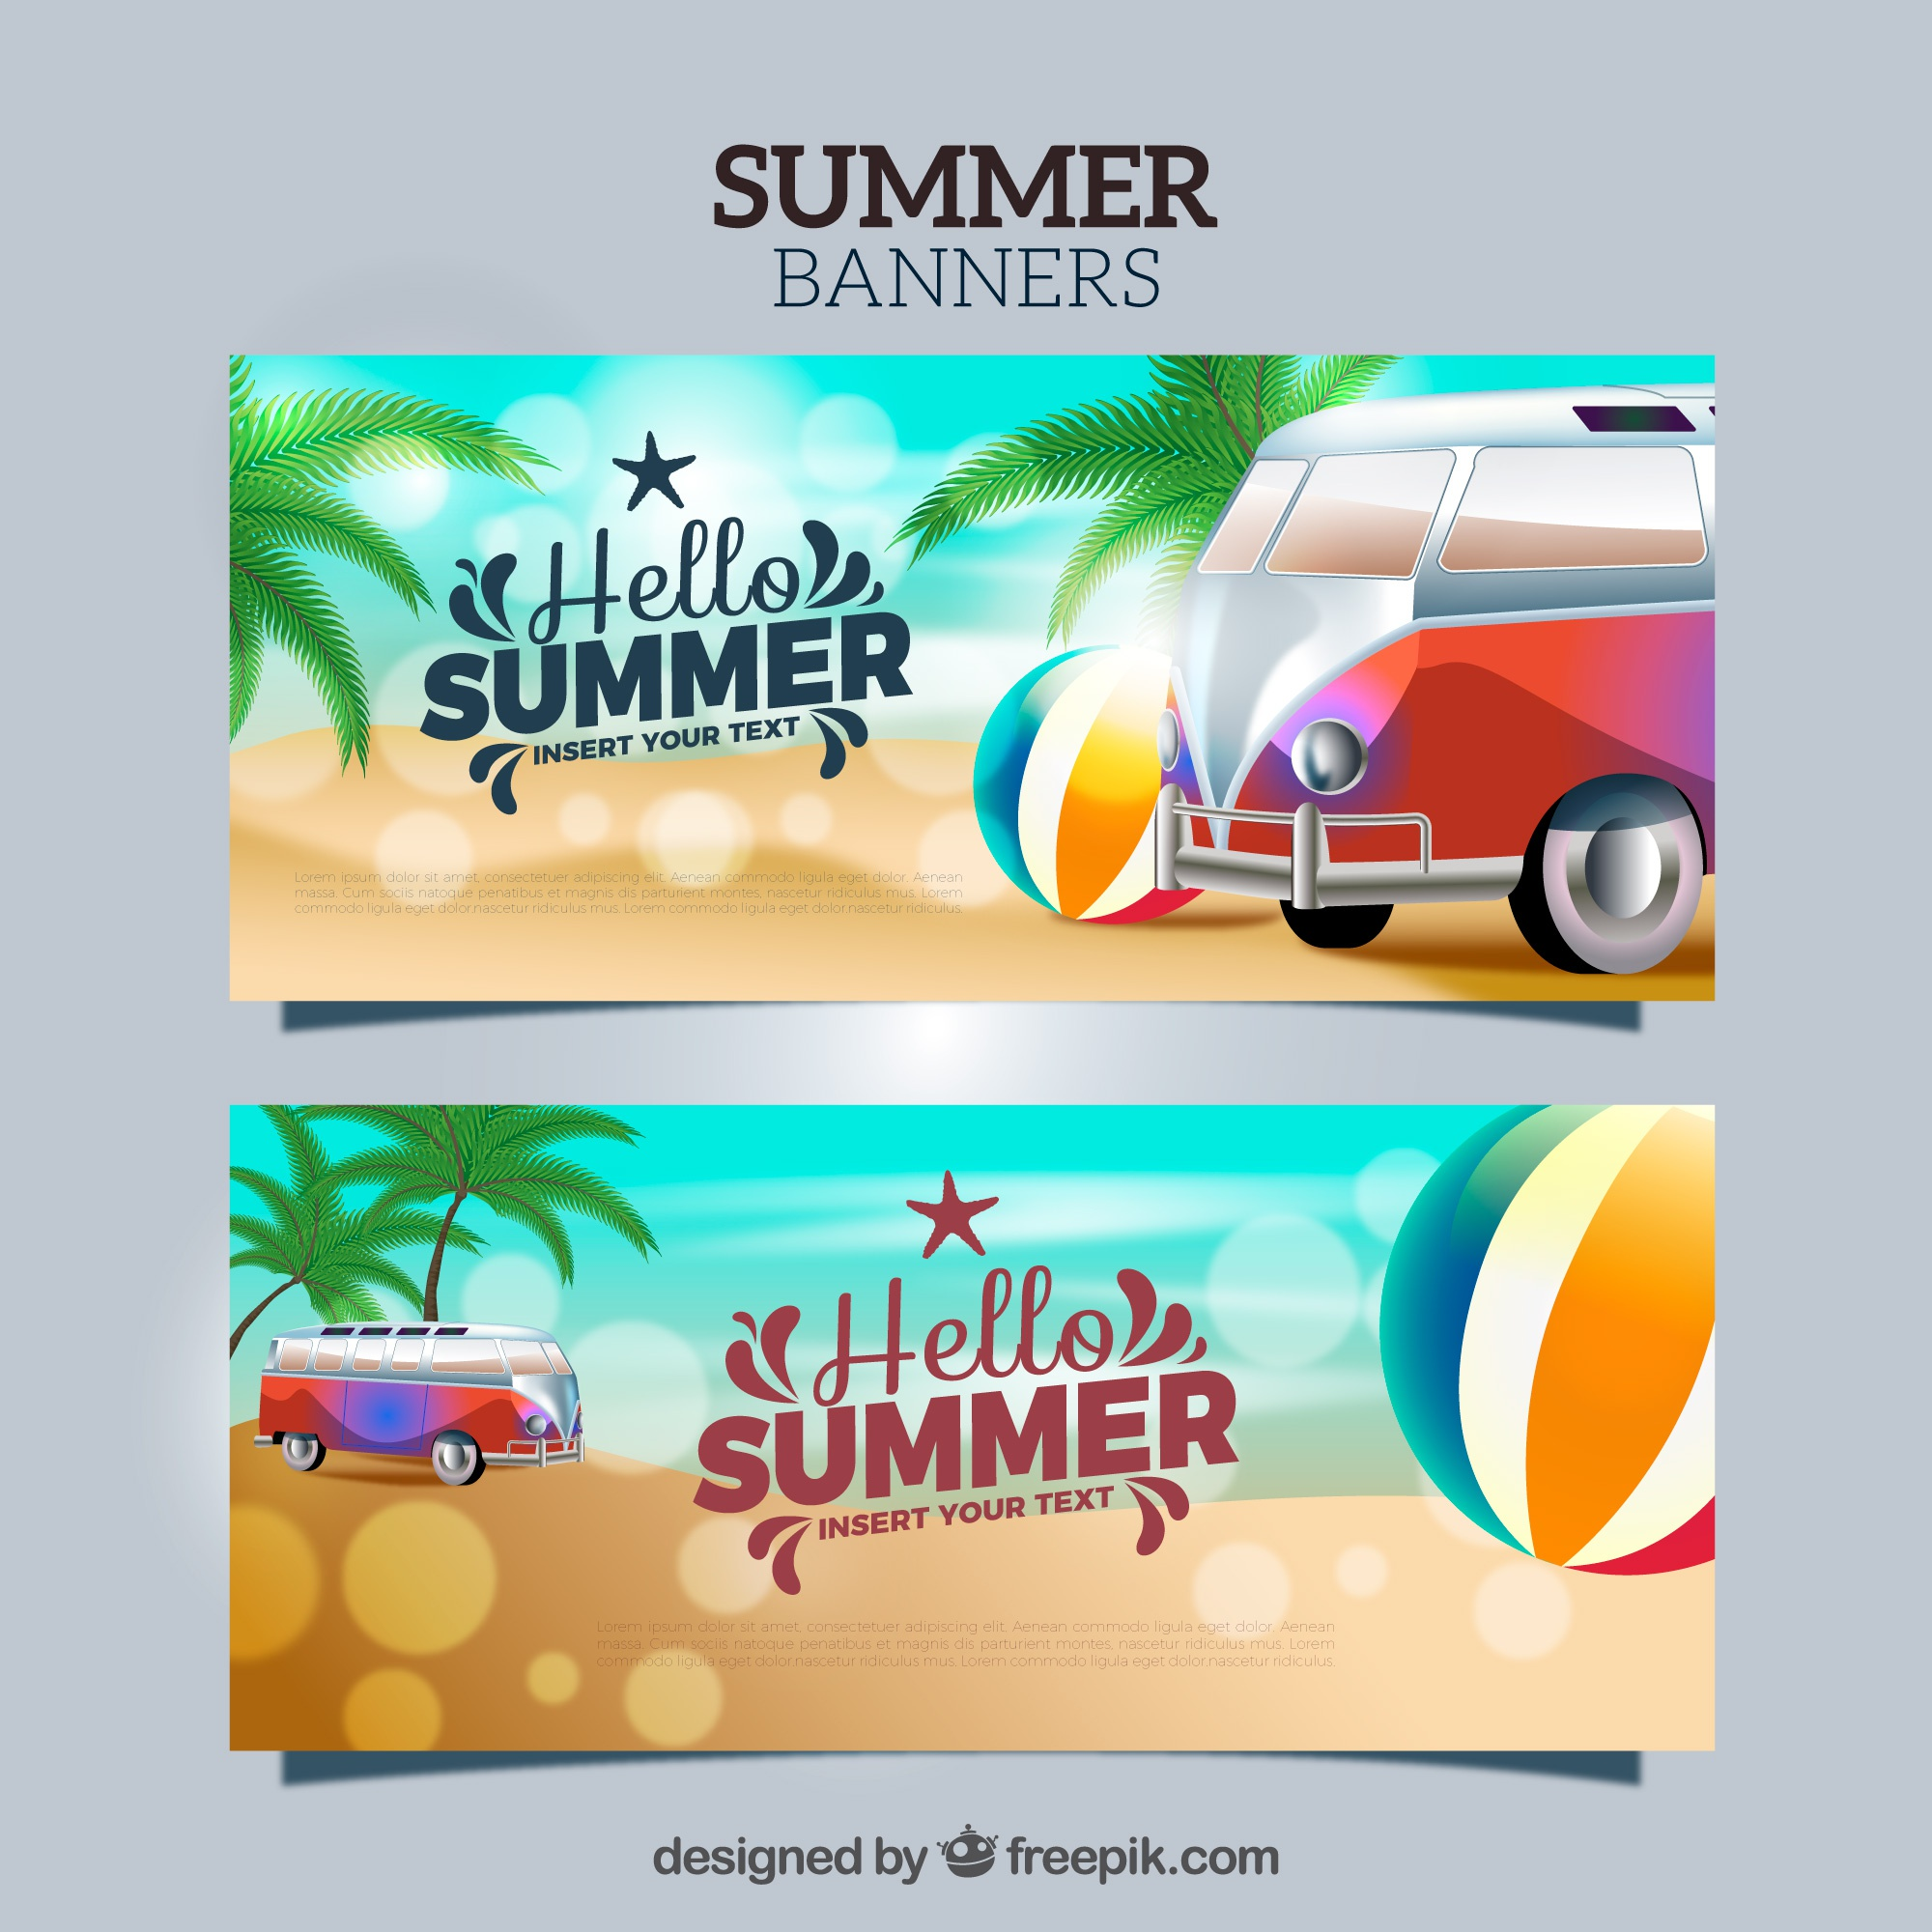 Bokeh summer banners with realistic elements